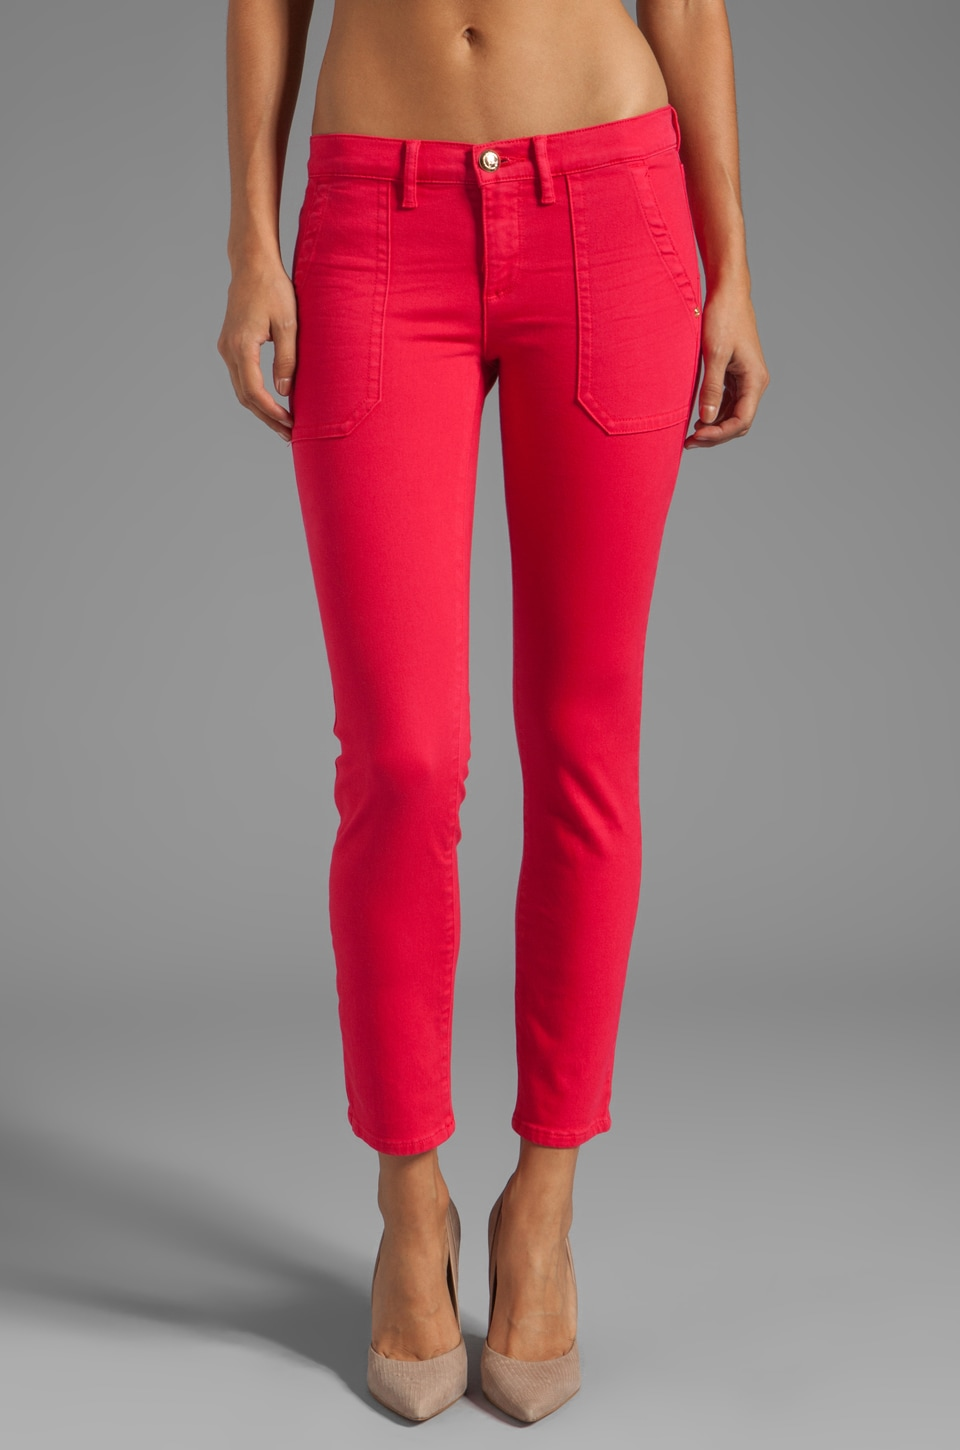 Juicy Couture Cargo Skinny Denim in Hot Cyclamen